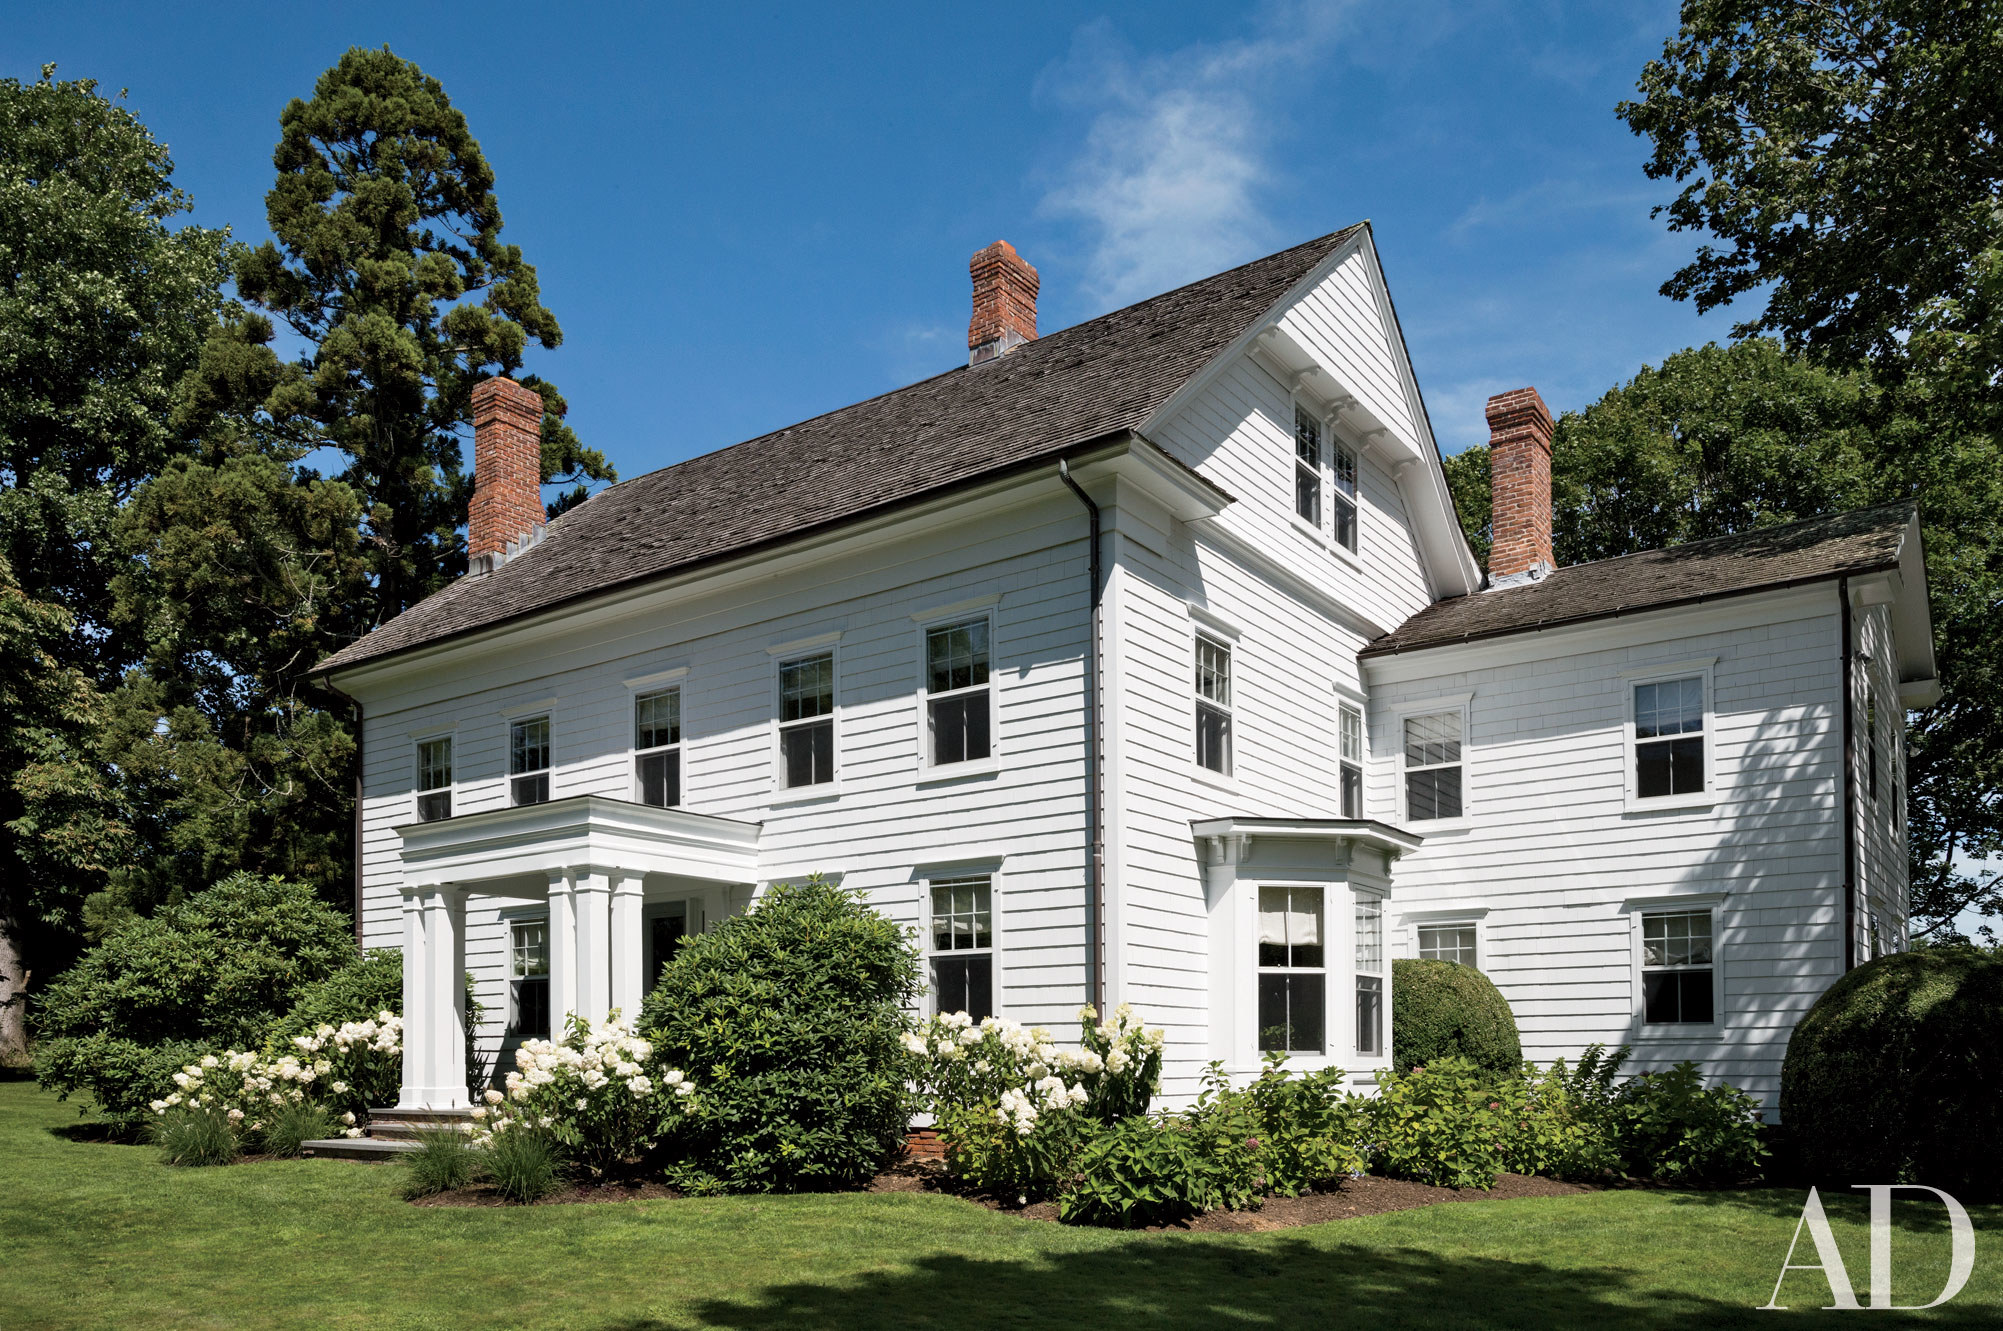 cedar shakes and shingles are used on many historic homes designs - Cedar Home Designs